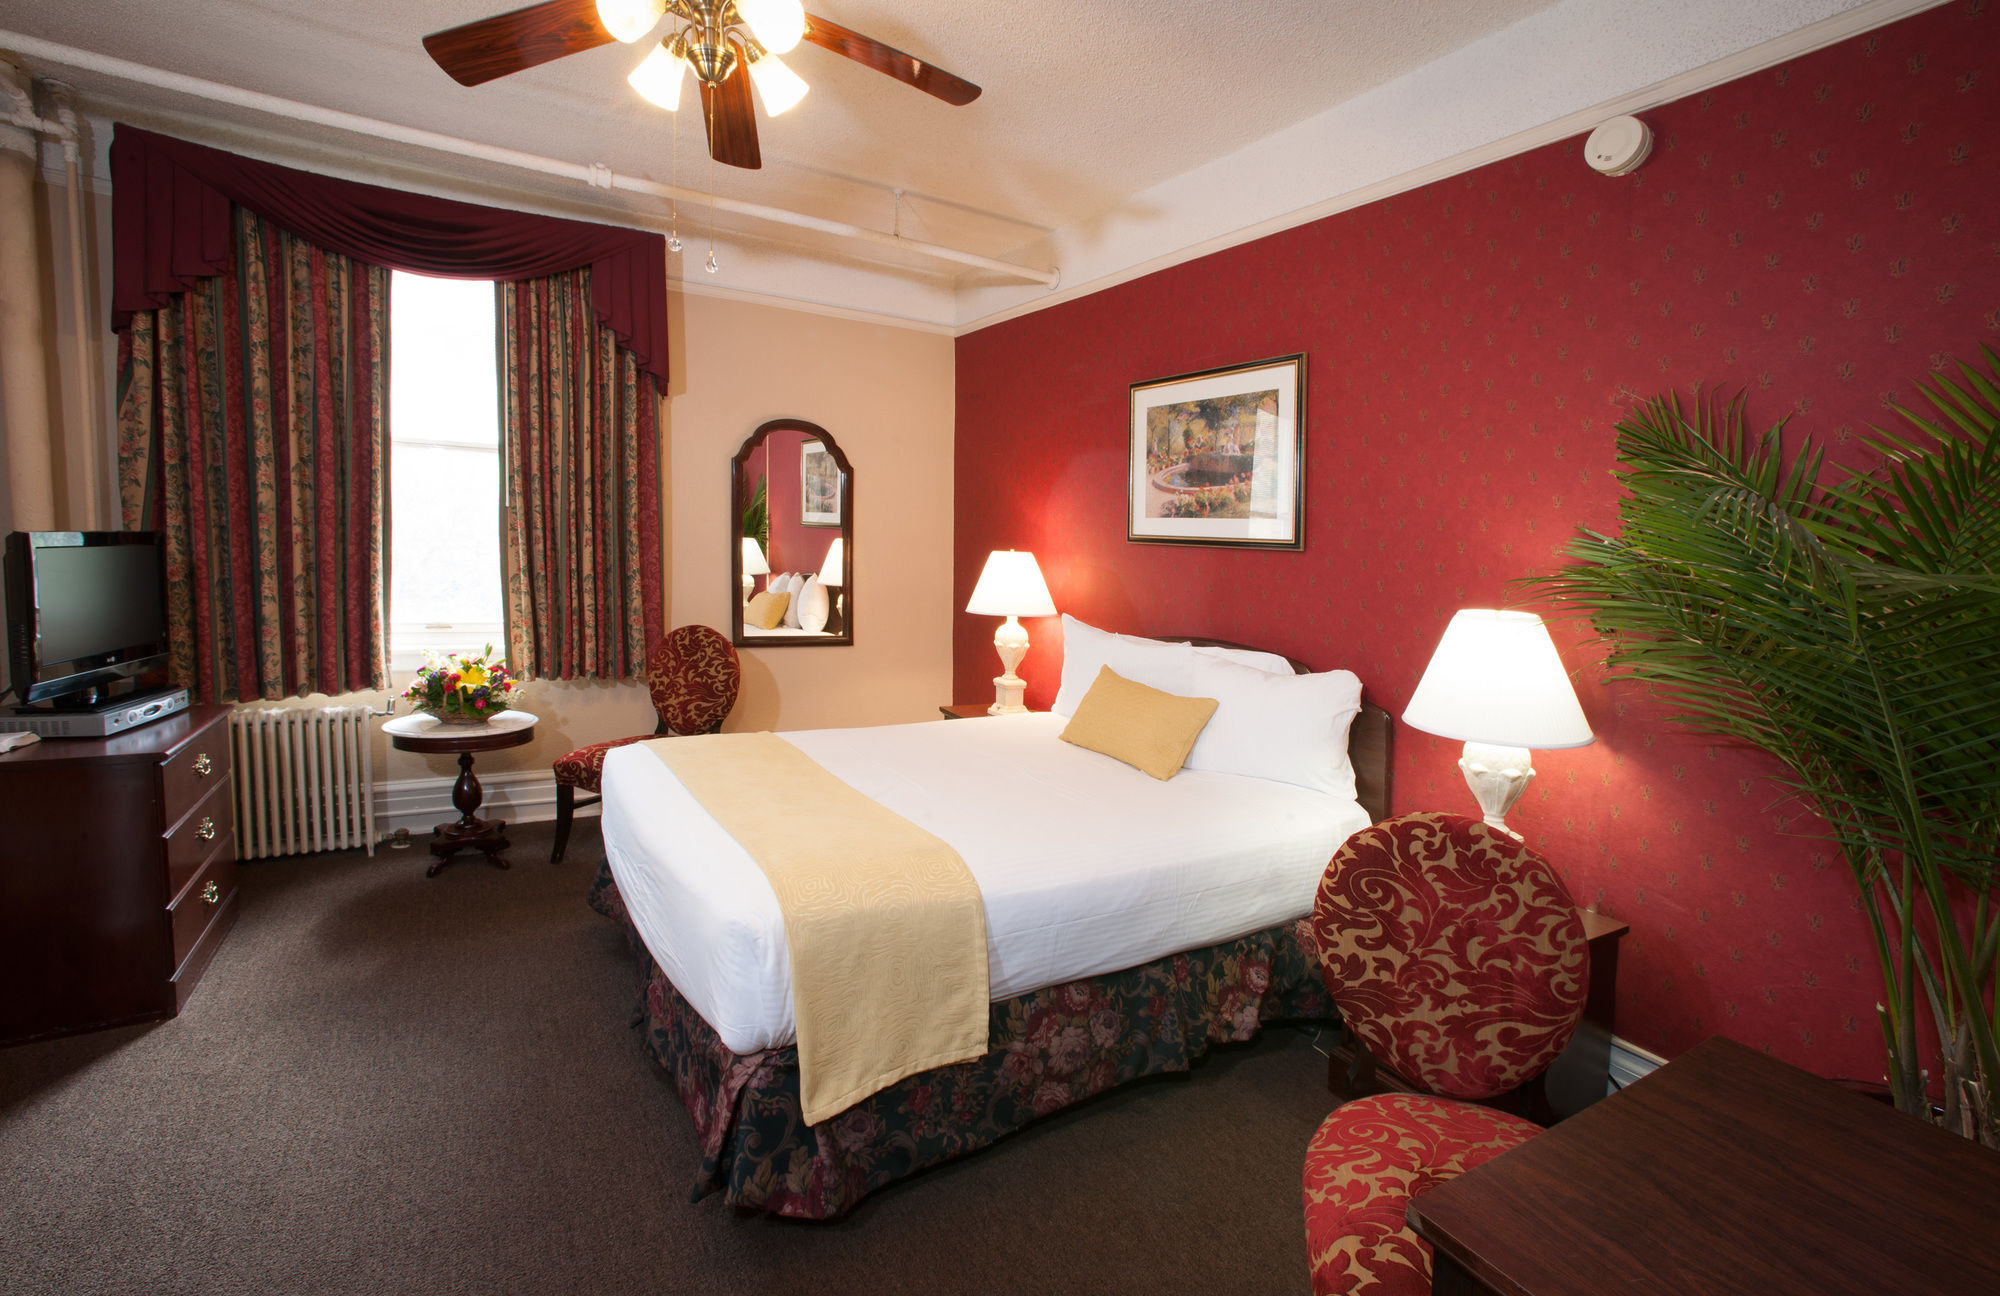 Discount Coupon For Hotel Colorado In Glenwood Springs